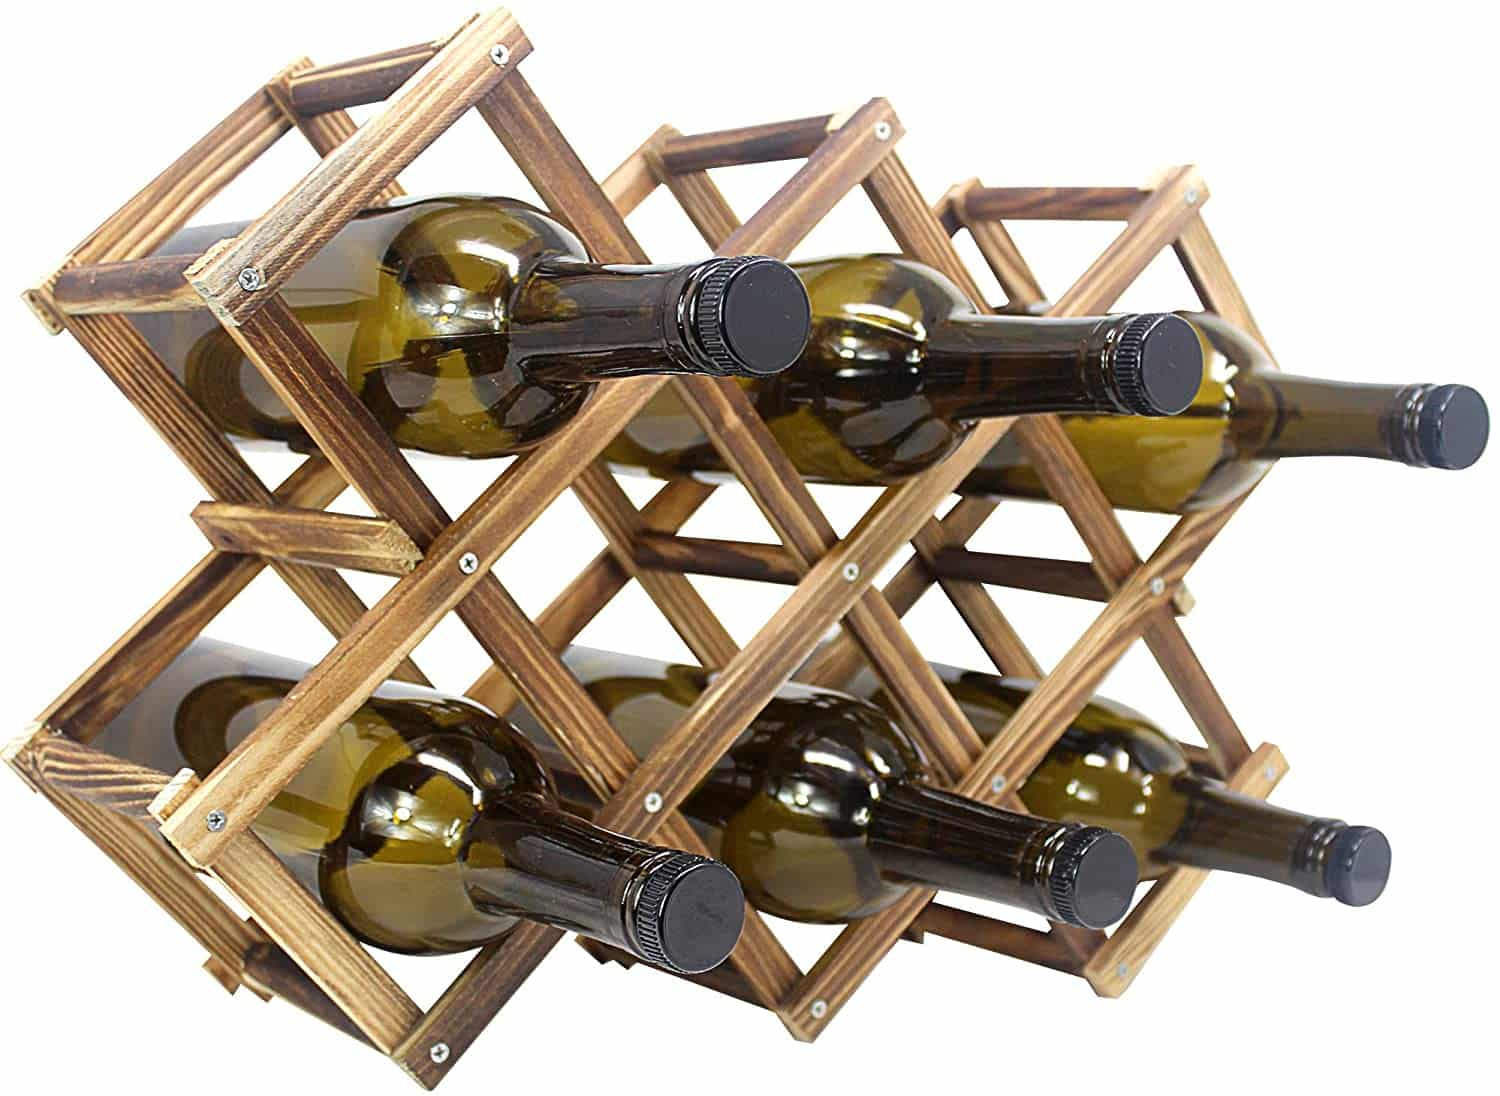 Foldable Wooden Wine Bottle Holder and Storage rack